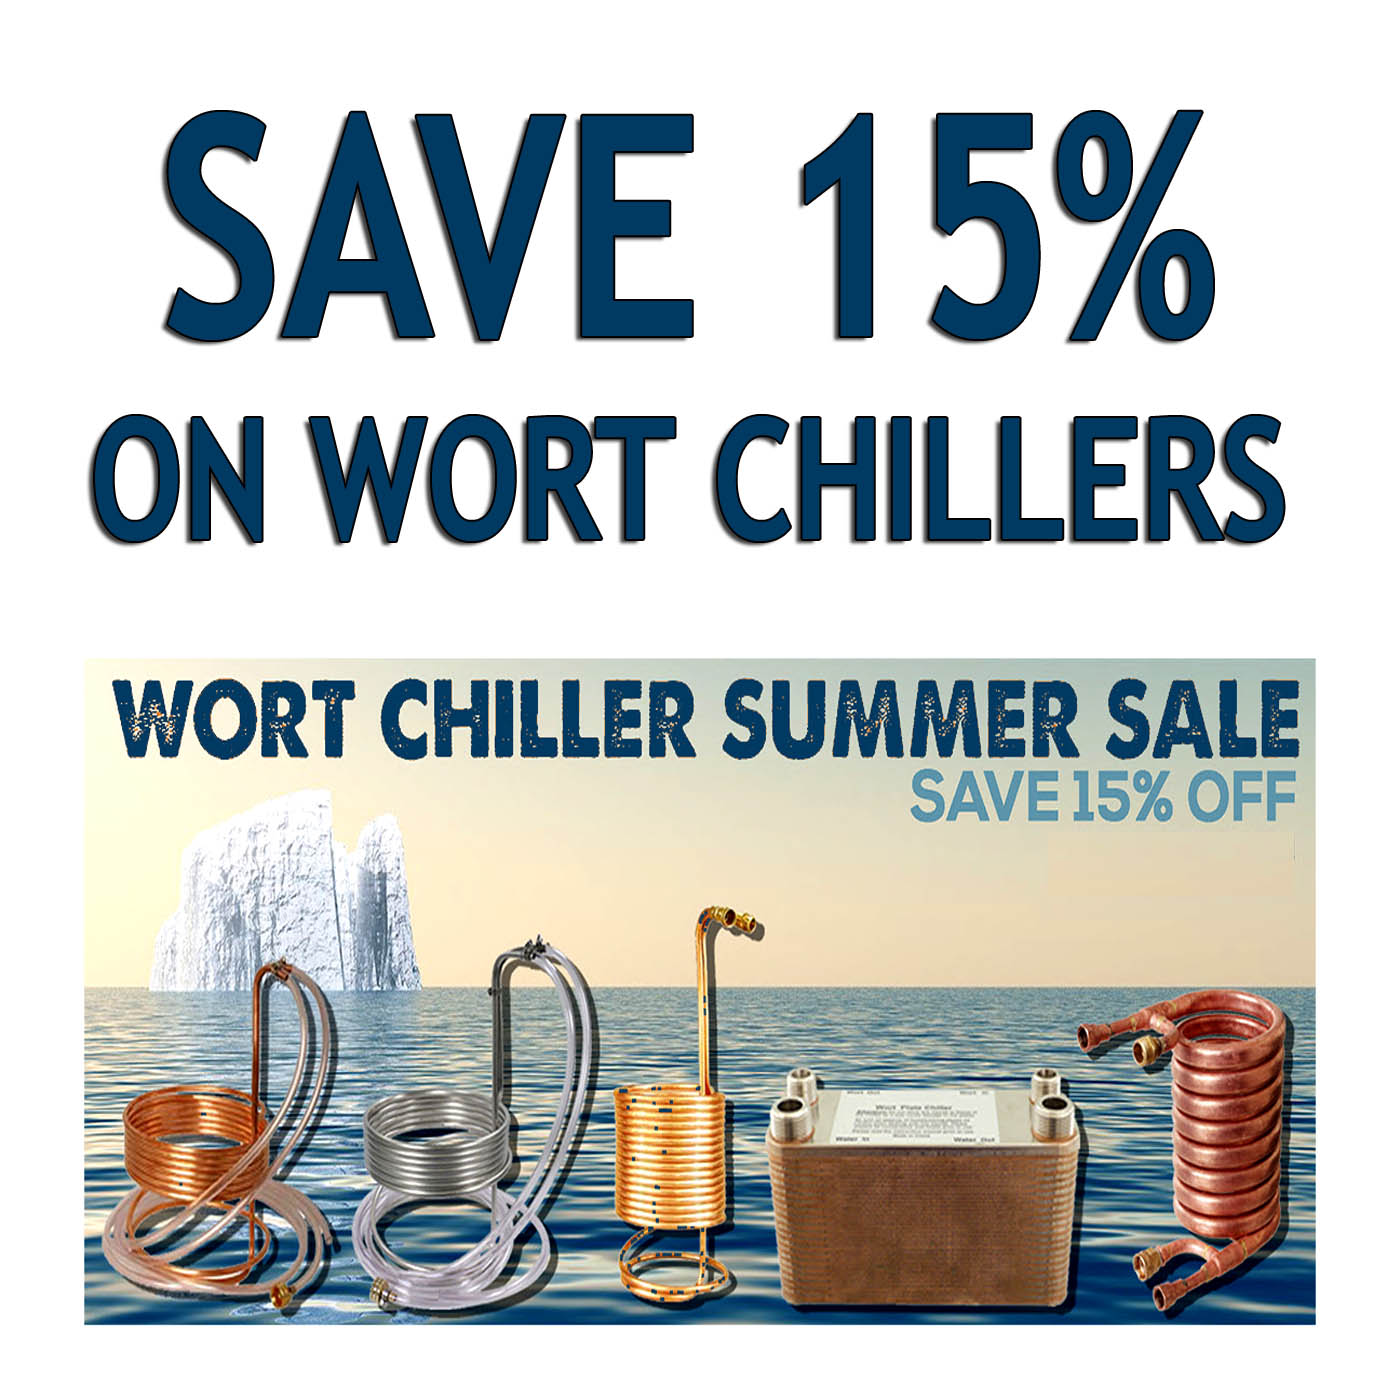 Home Brewer Promo Code for Save 15% on Wort Chillers with this MoreBeer.com Promo Code Coupon Code